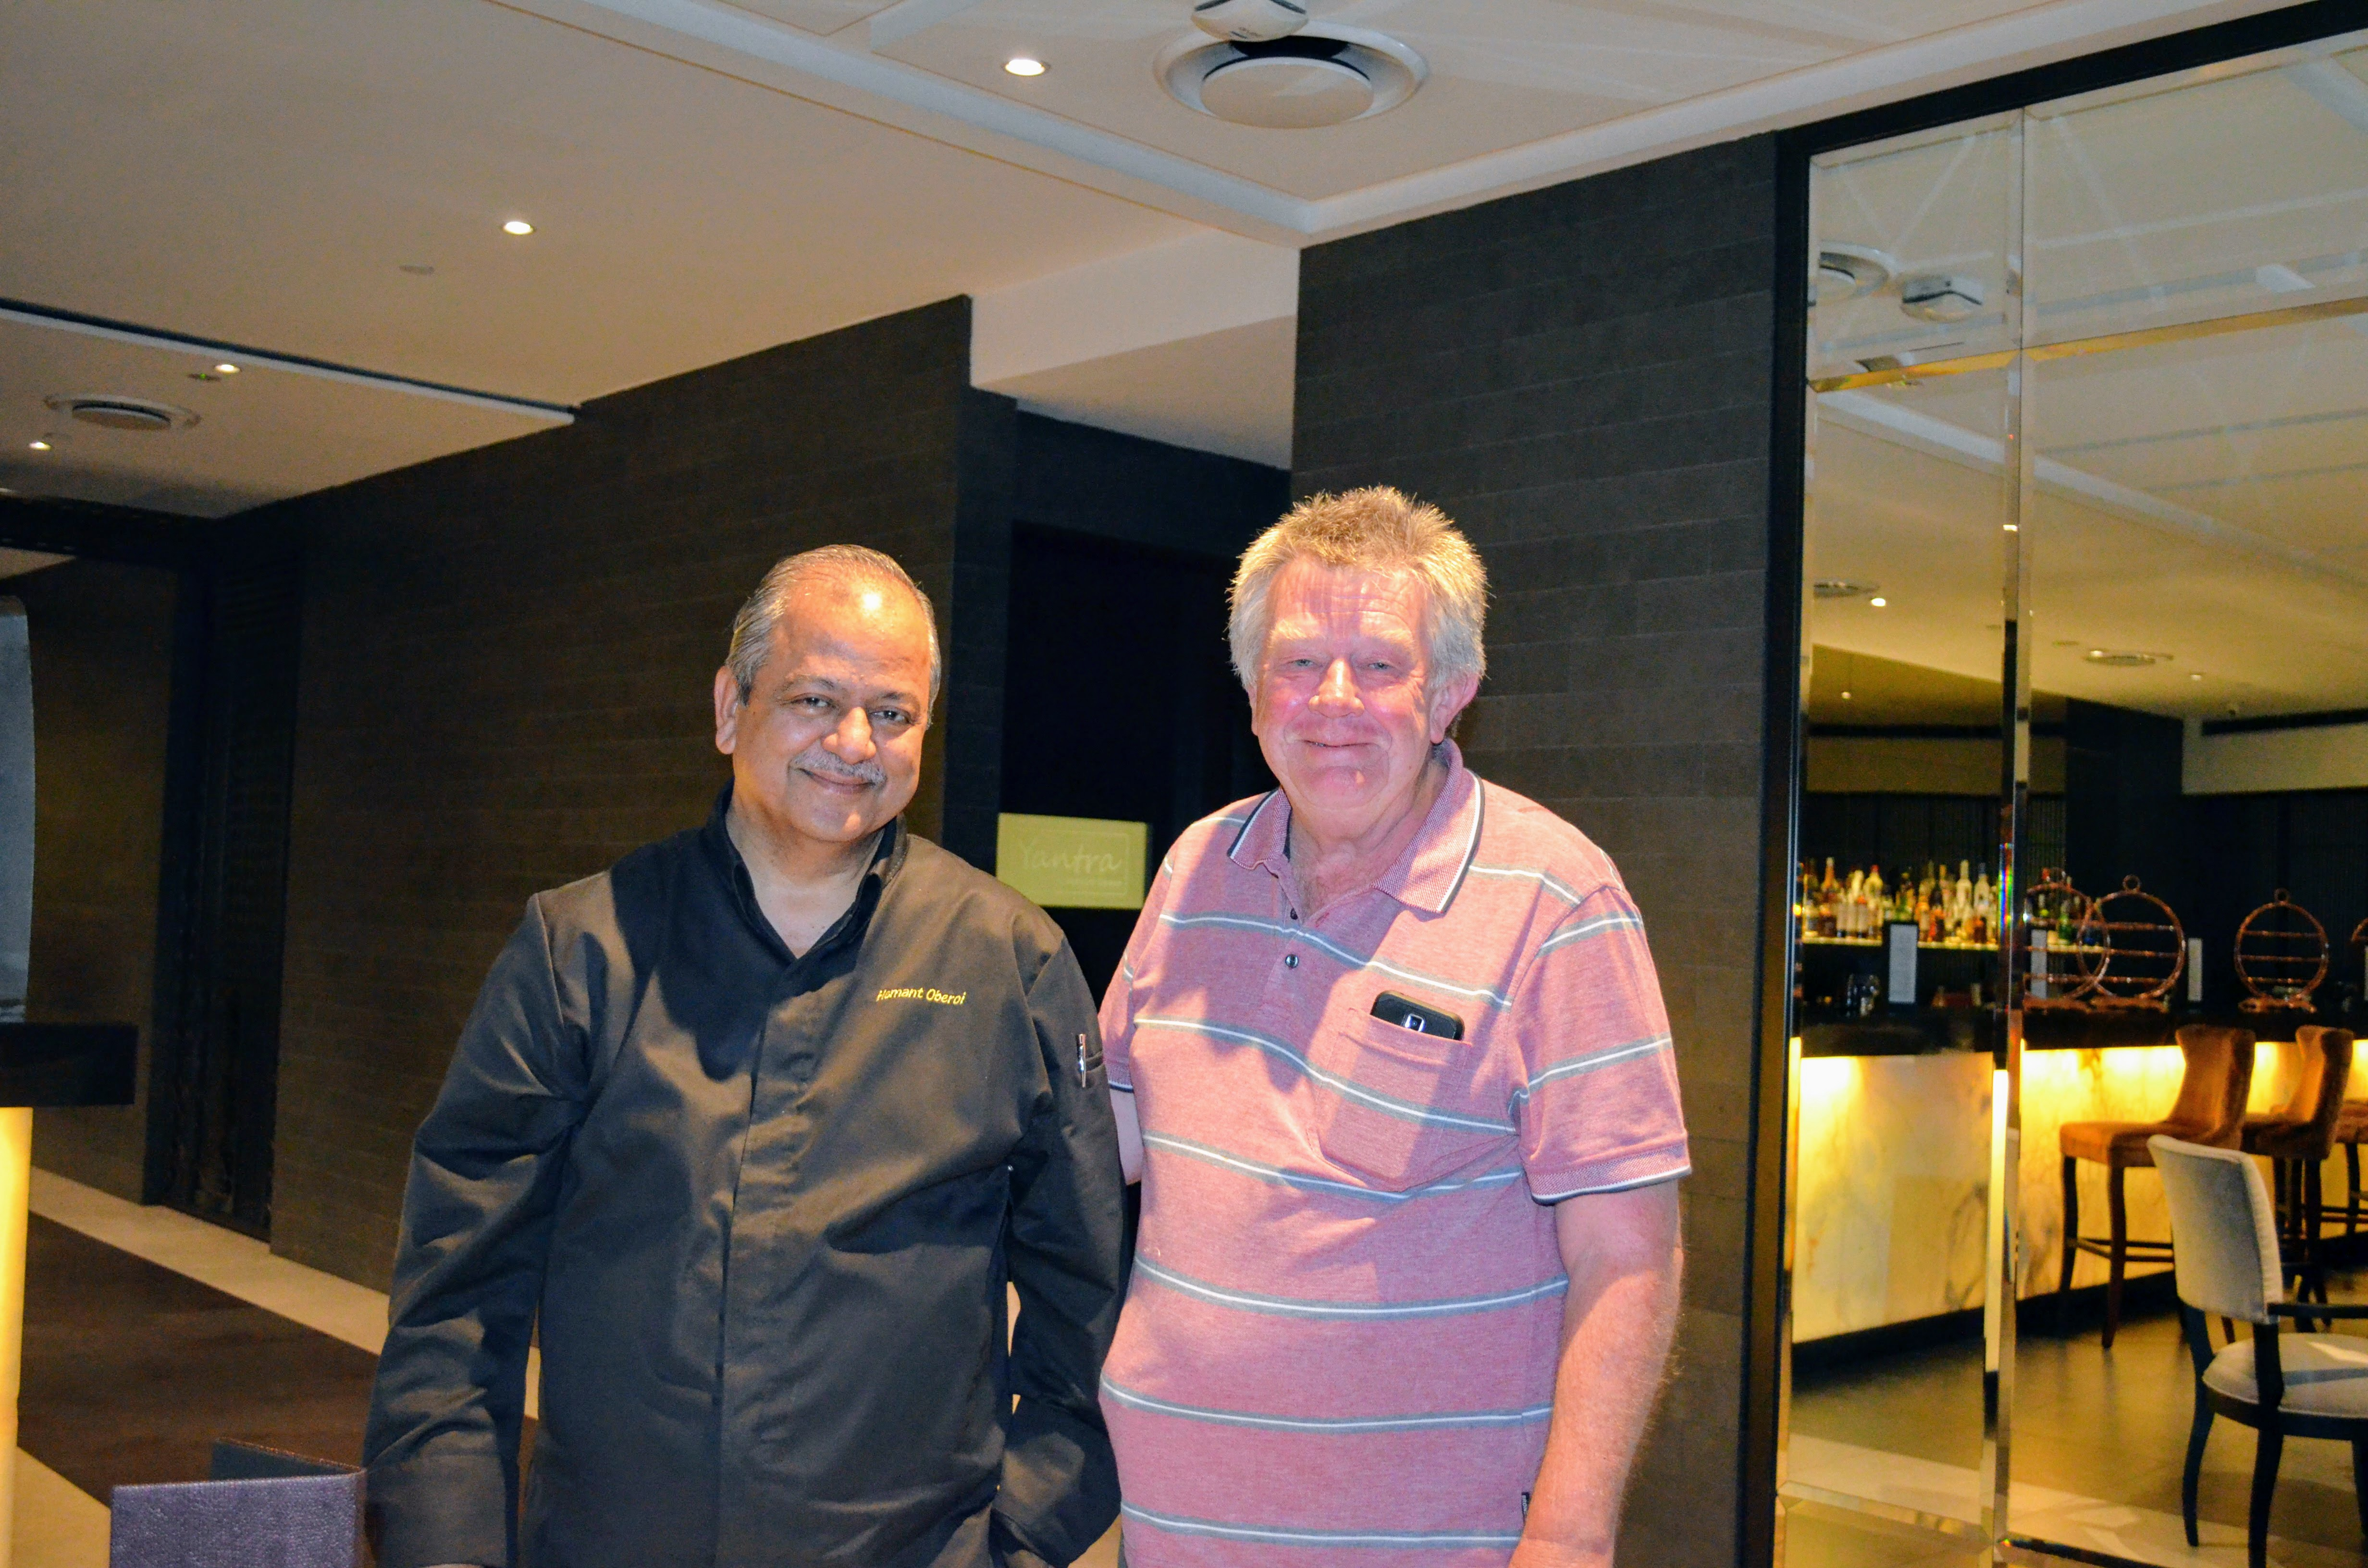 When a happy customer cuts into the conversation to thank and greet chef Hemant Oberoi Photo: Connected to India